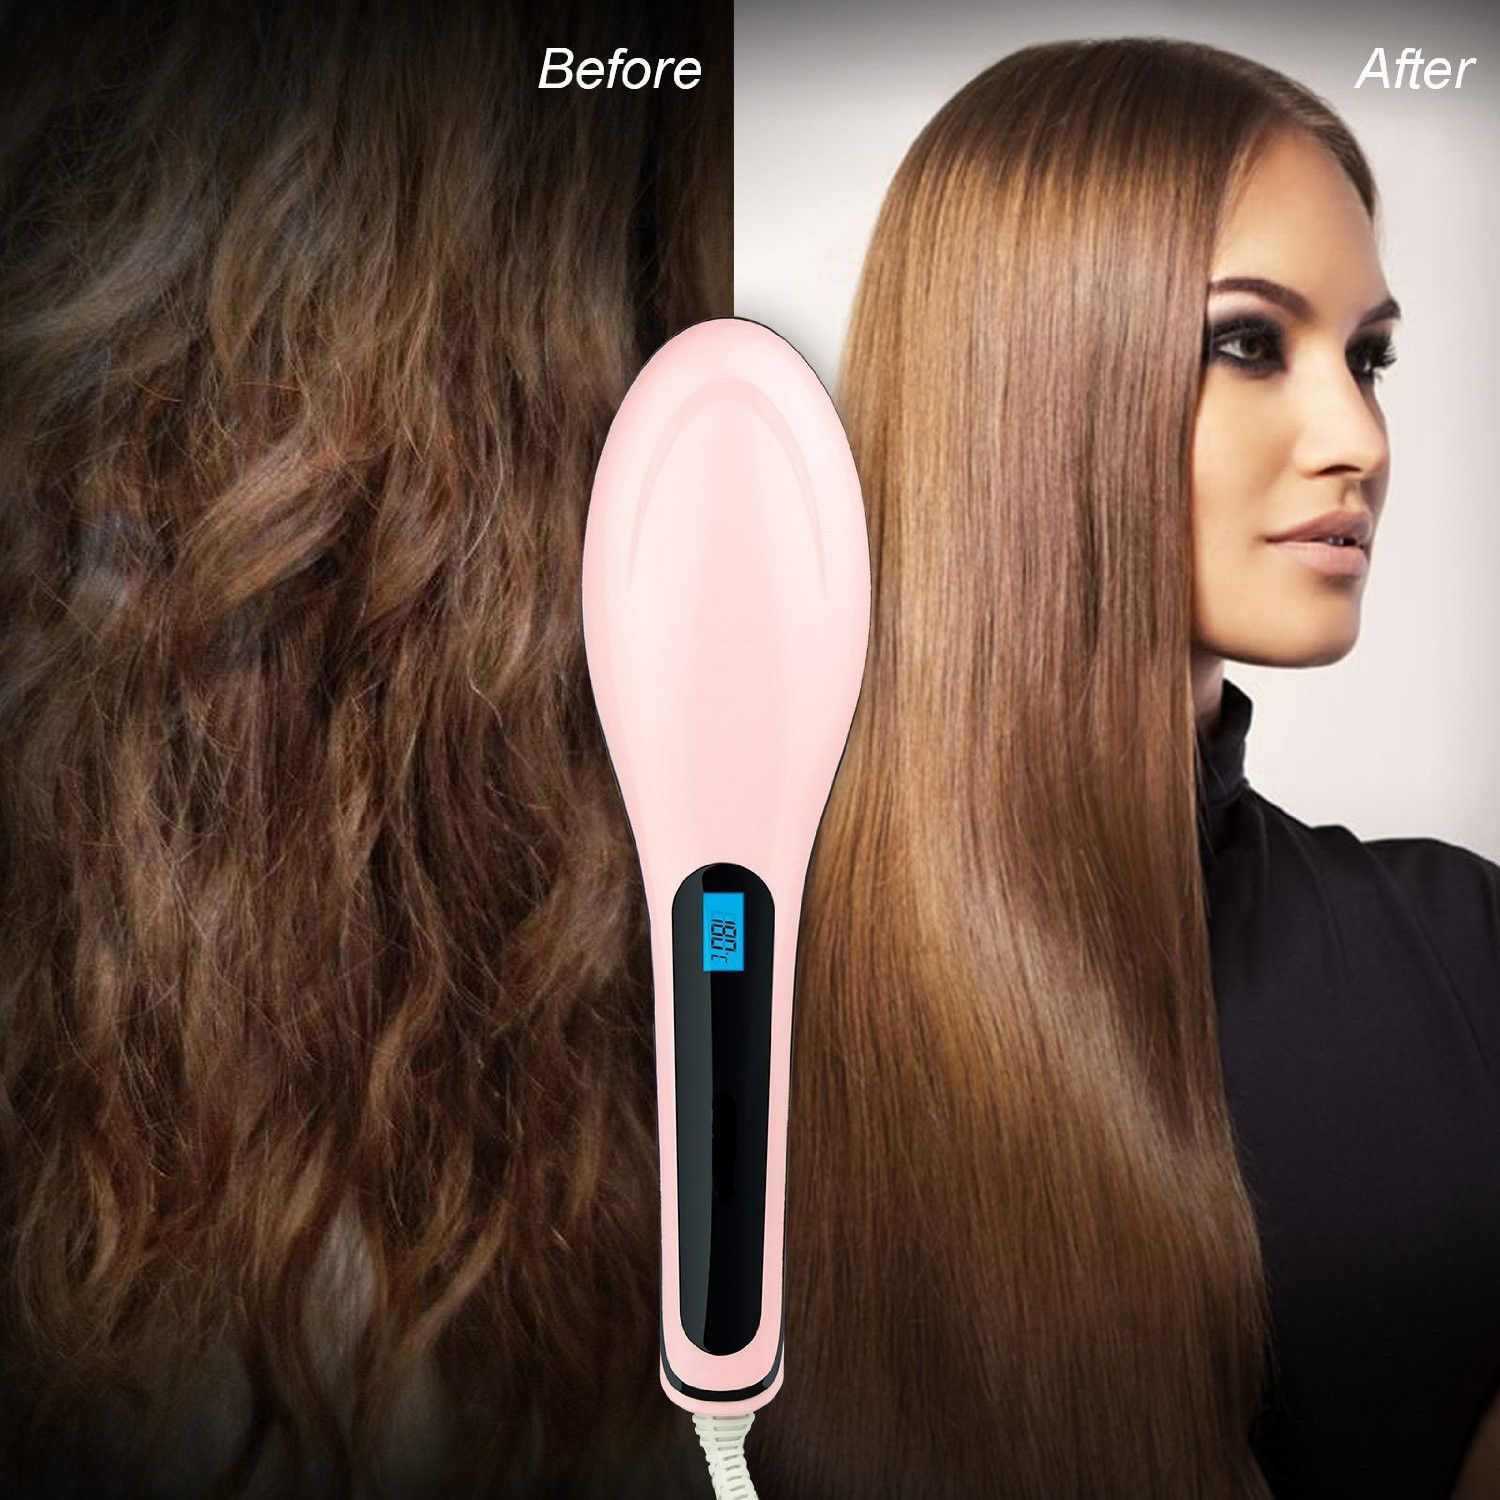 Before and after using StraightFix™ Hair Straightening